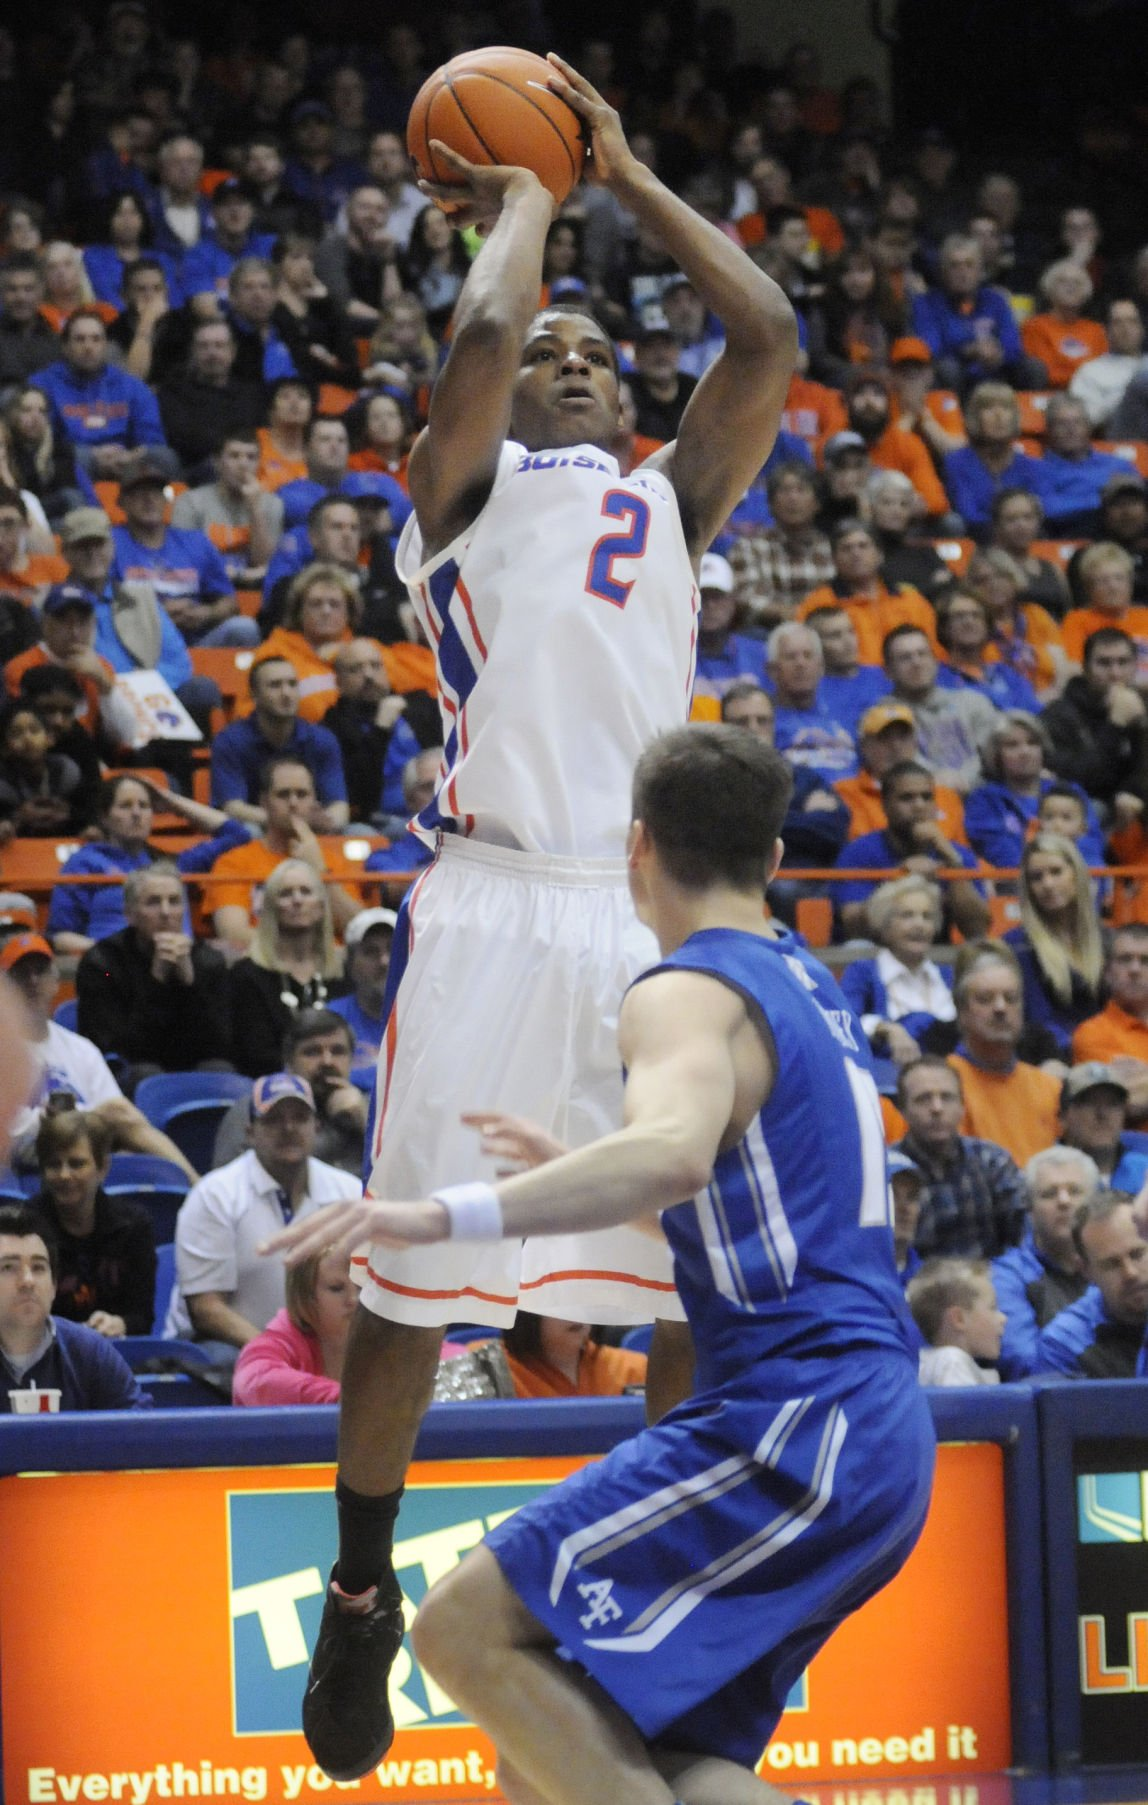 Boise State Looks To Add To Ncaa Tournament Resume At Fresno State